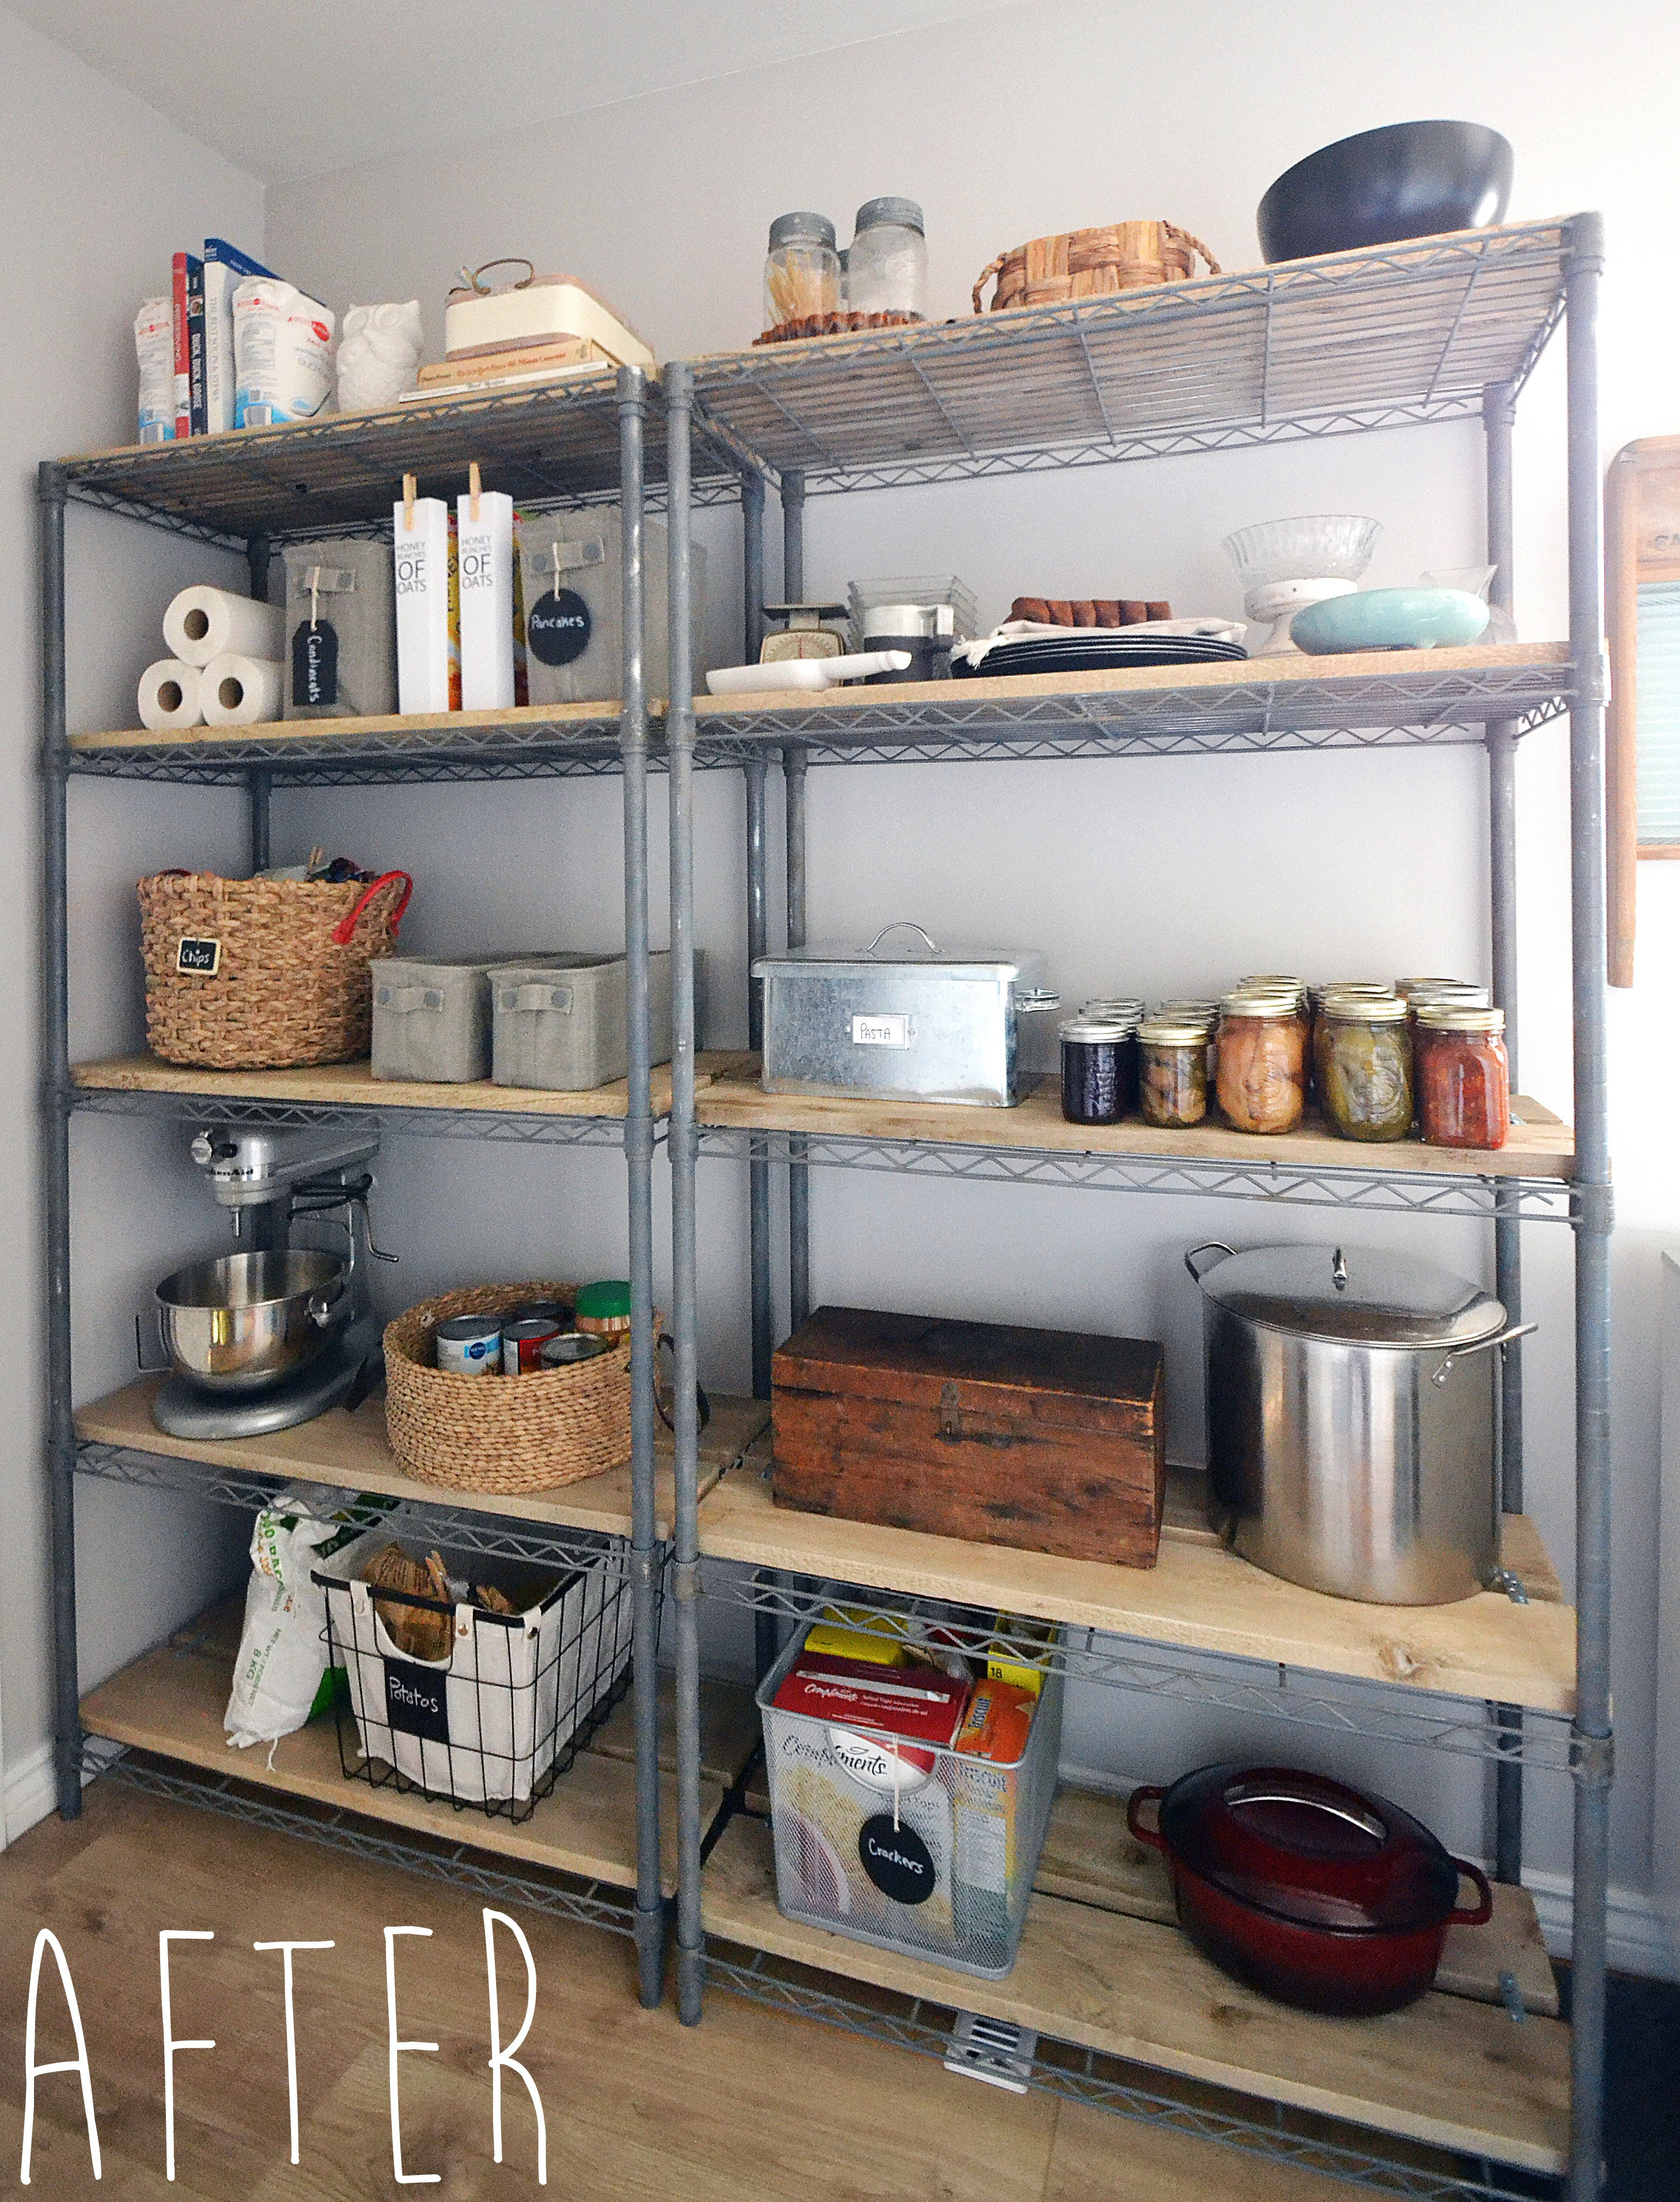 Best ideas about Wire Pantry Shelving . Save or Pin The Crux How To Give Pantry Shelving Easy Rustic Charm Now.